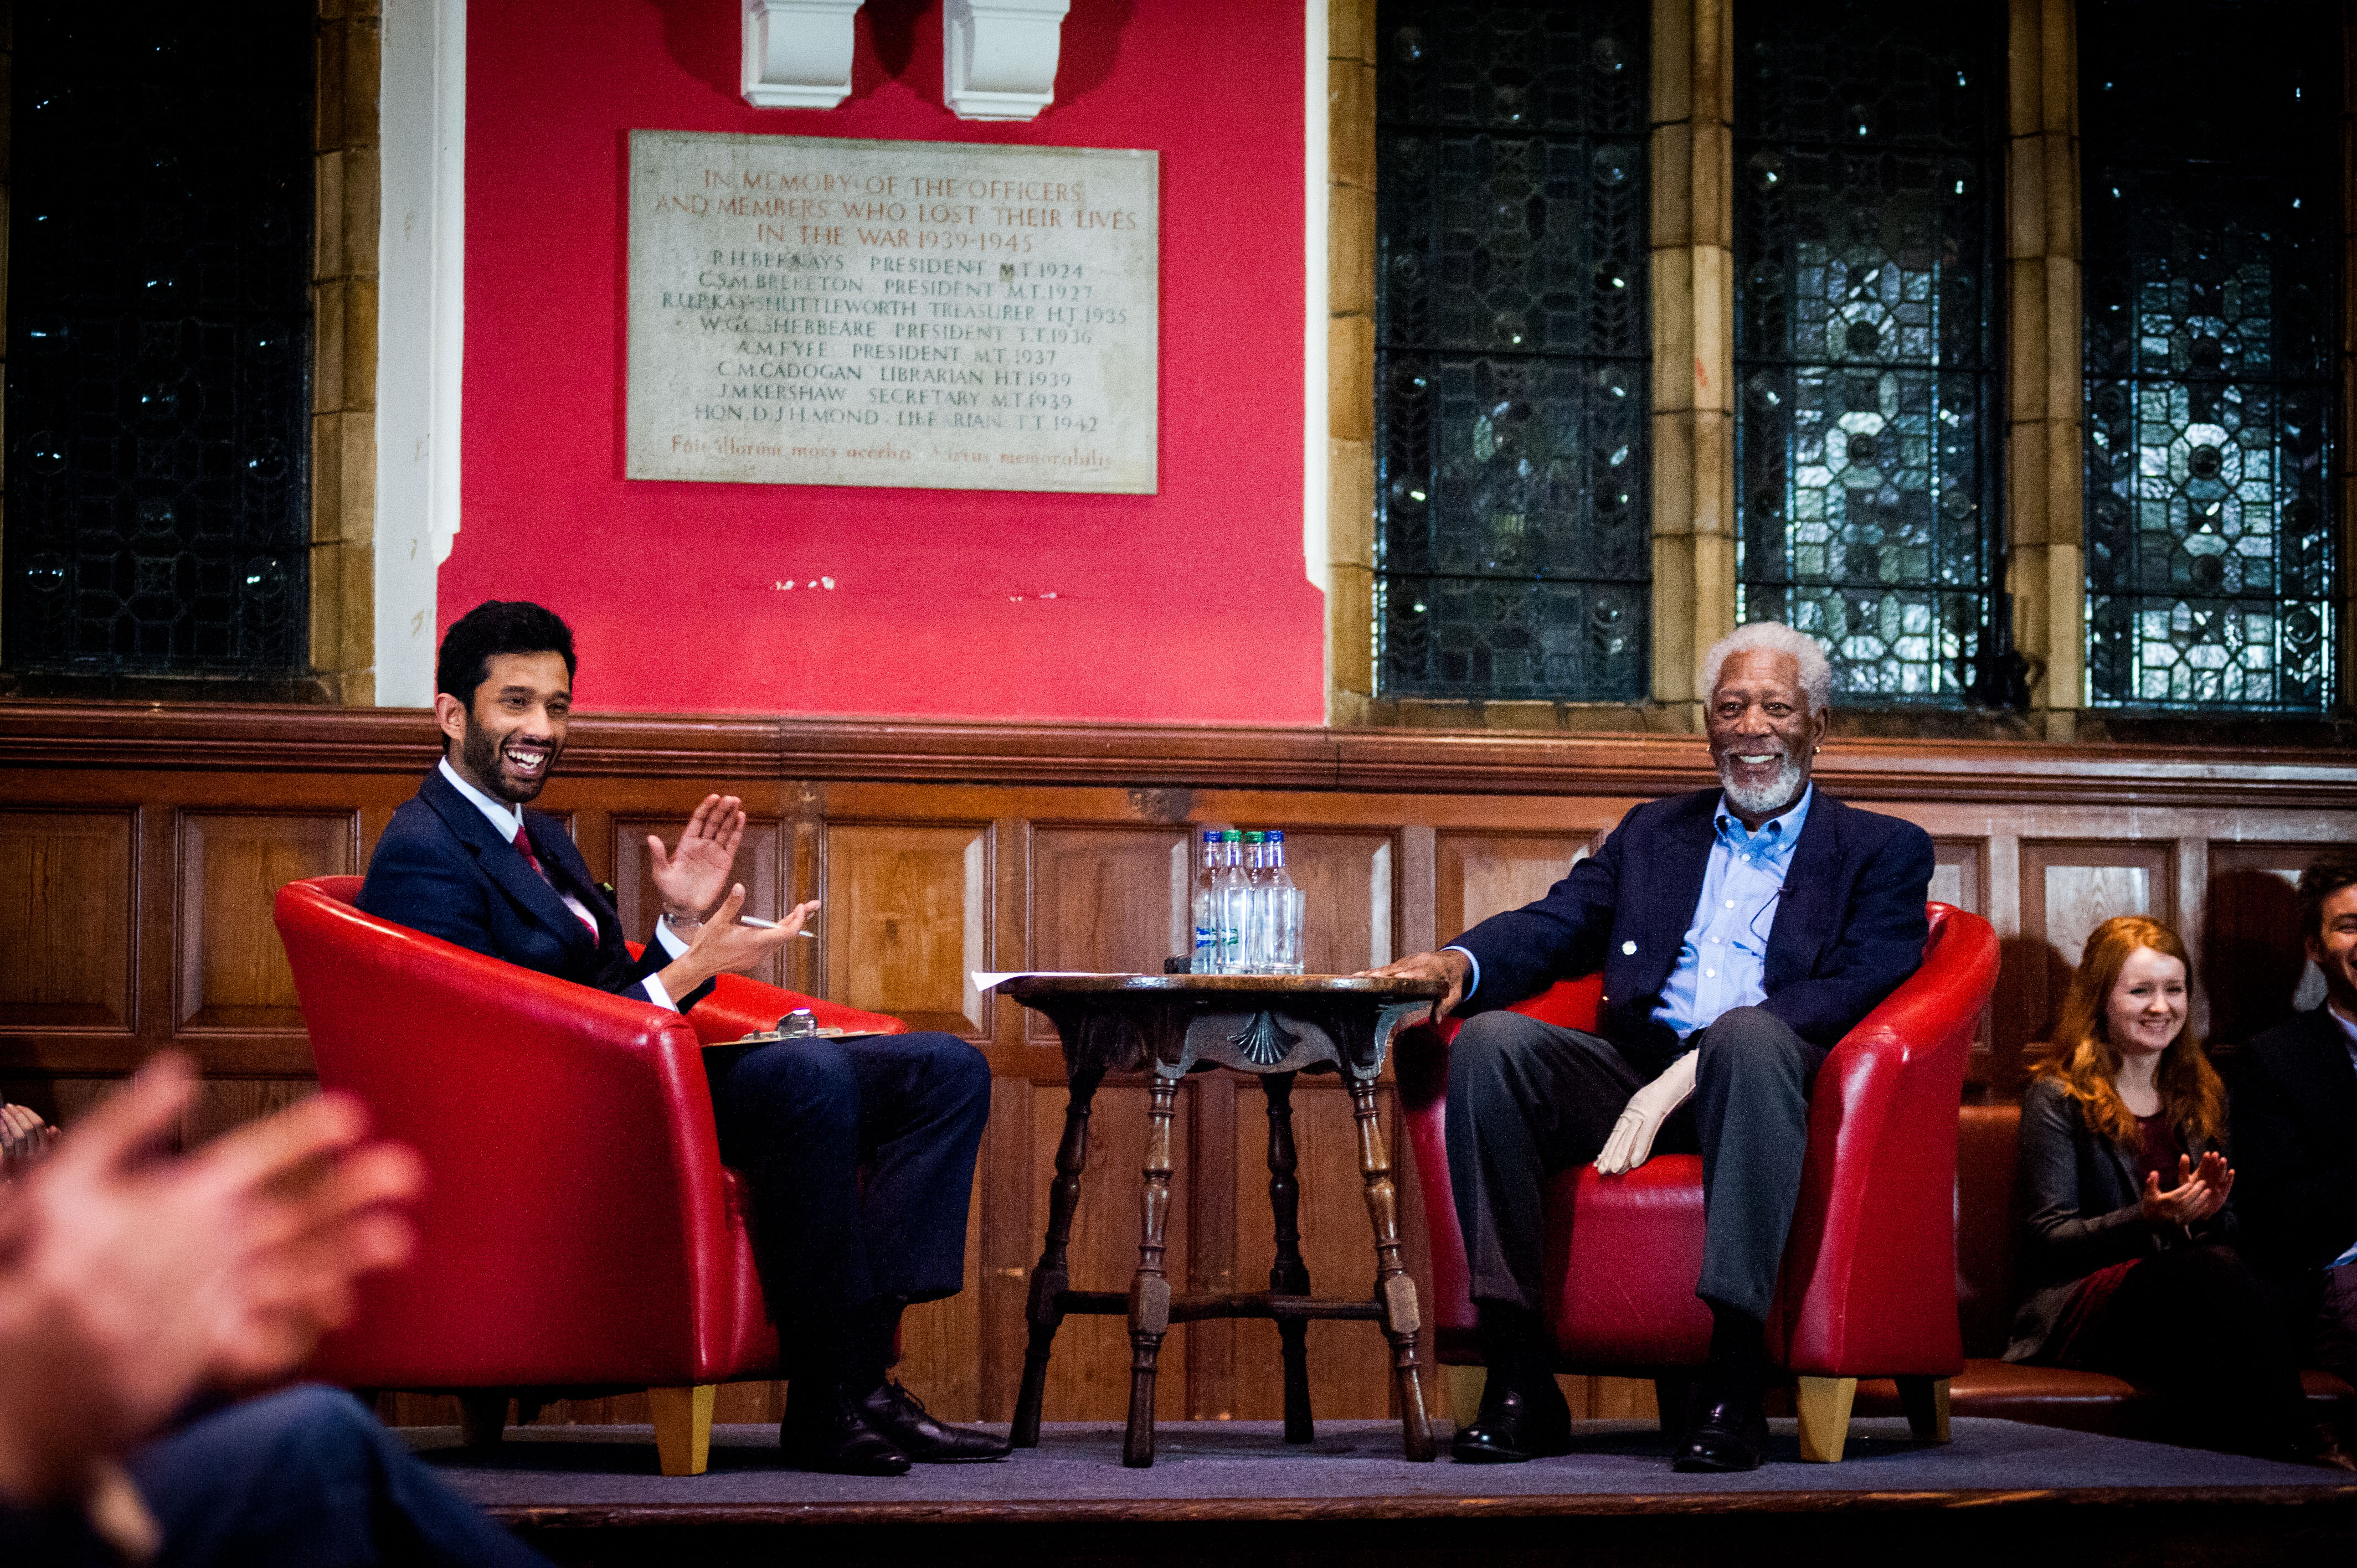 Oxford, U.K., November 11, 2014--Oxford University Union President Mayank Banerjee moderates SAG Foundation Conversations with Morgan Freeman at Oxford (Photo credit: Roger Askew/Oxford University)